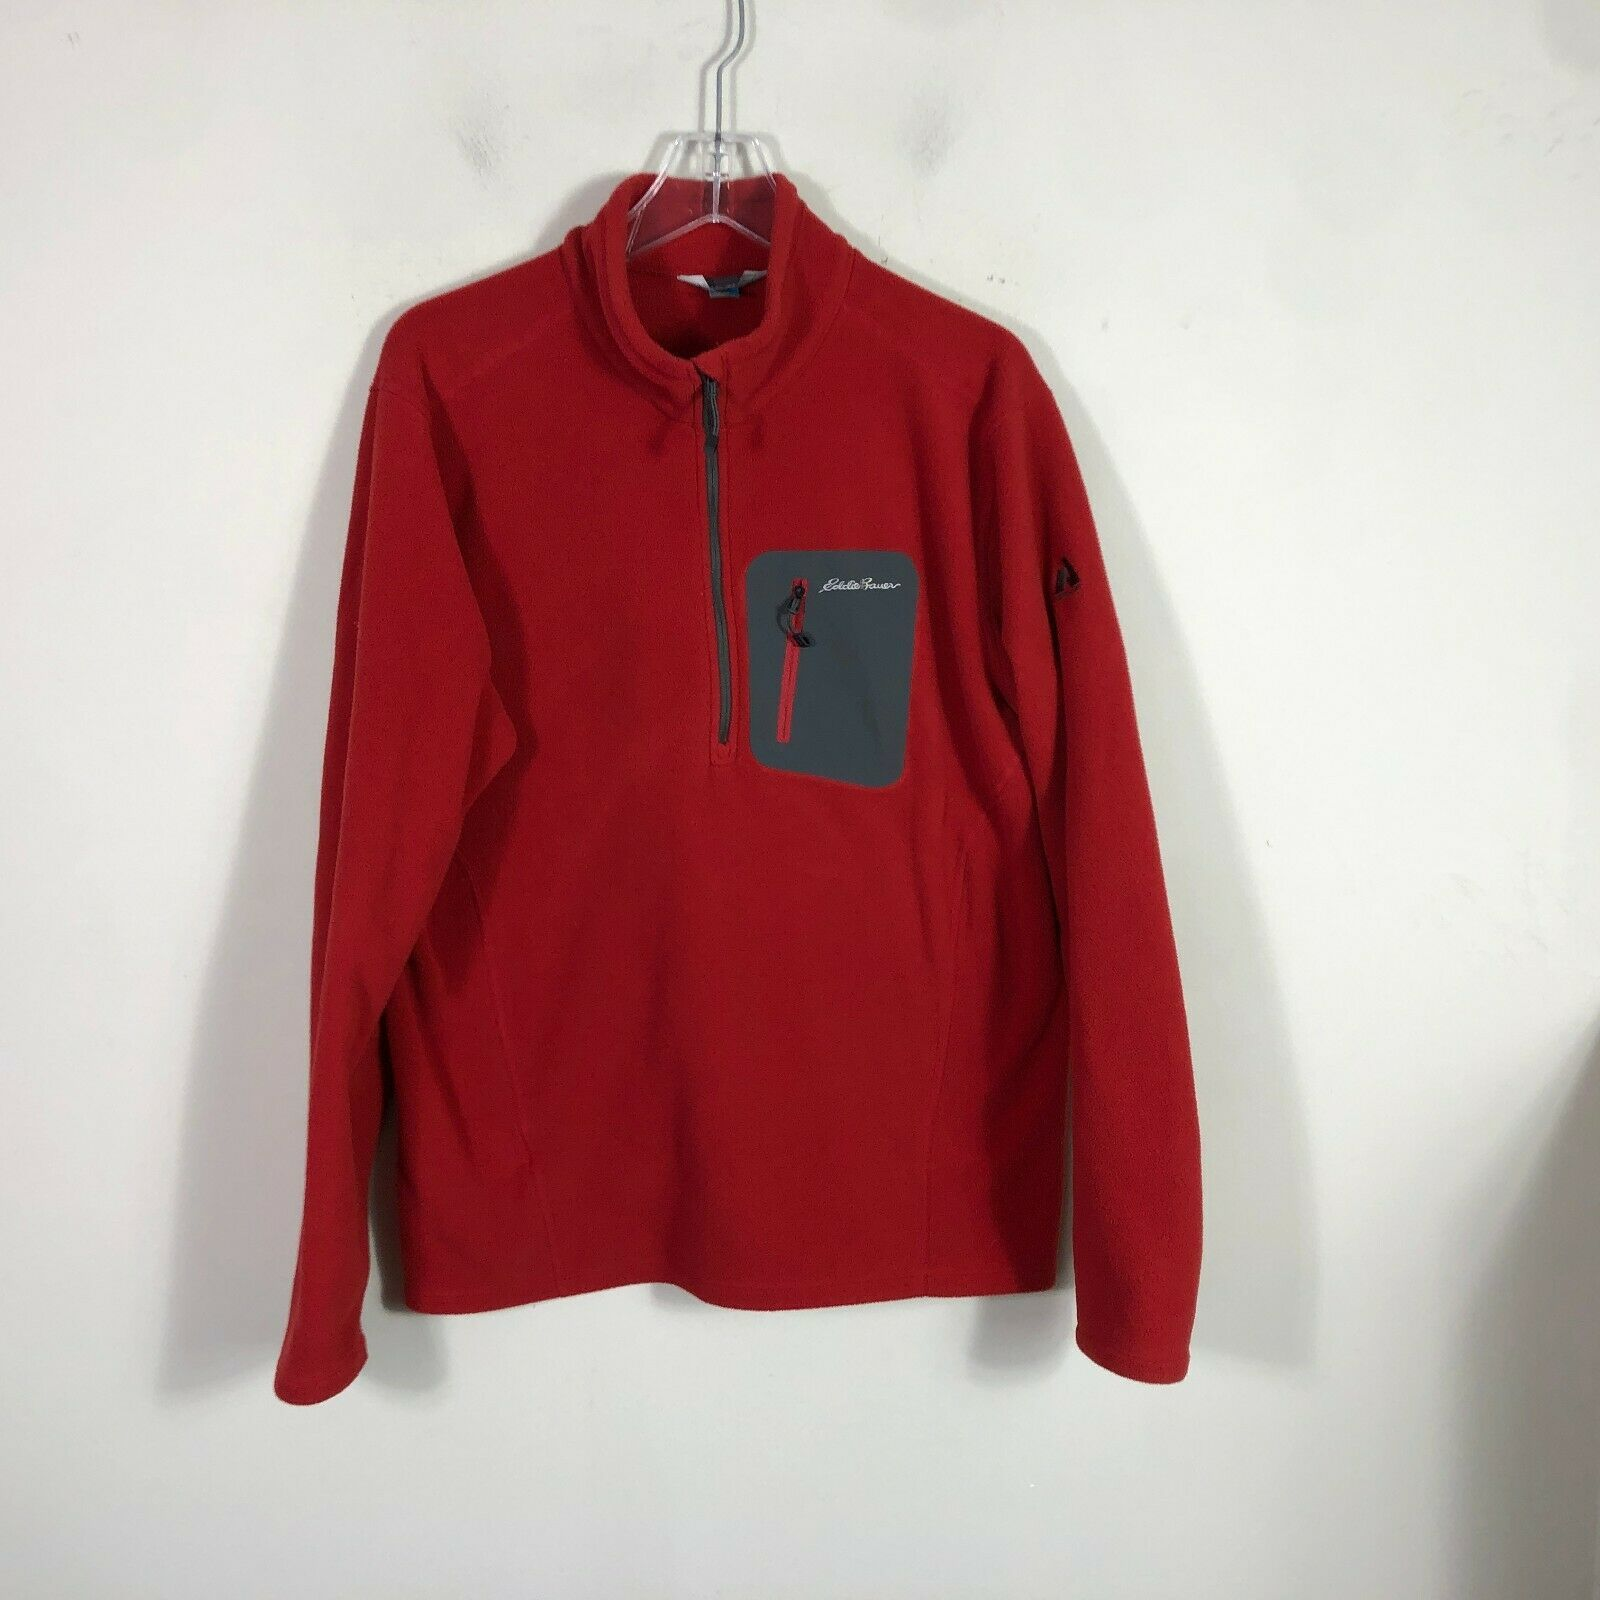 Eddie Bauer First Ascent Fleece Jacket Large Red Long Sleeve Pull Over 1/2 Zip image 6